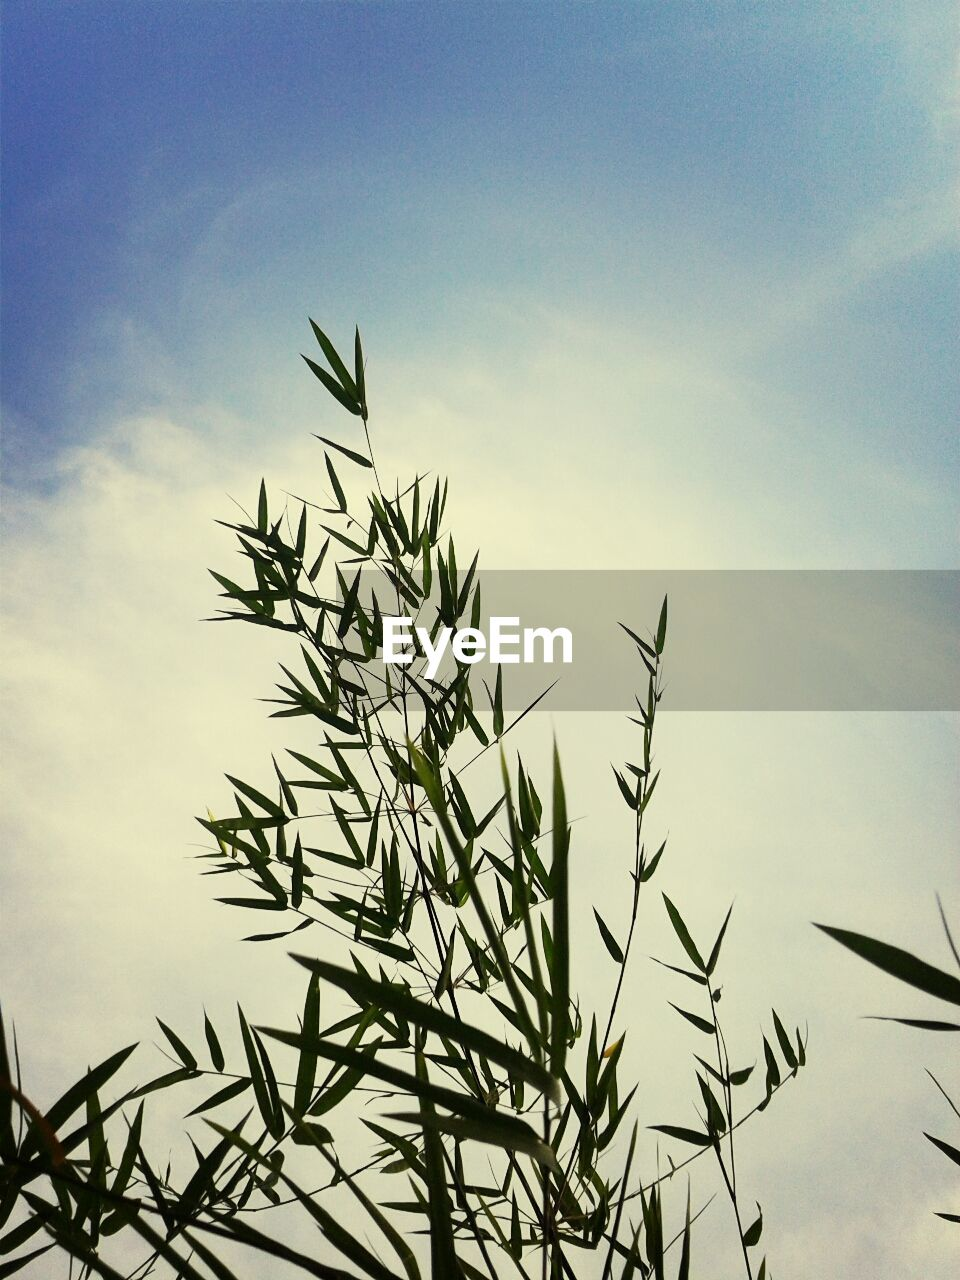 growth, nature, sky, plant, outdoors, no people, low angle view, beauty in nature, tranquility, day, close-up